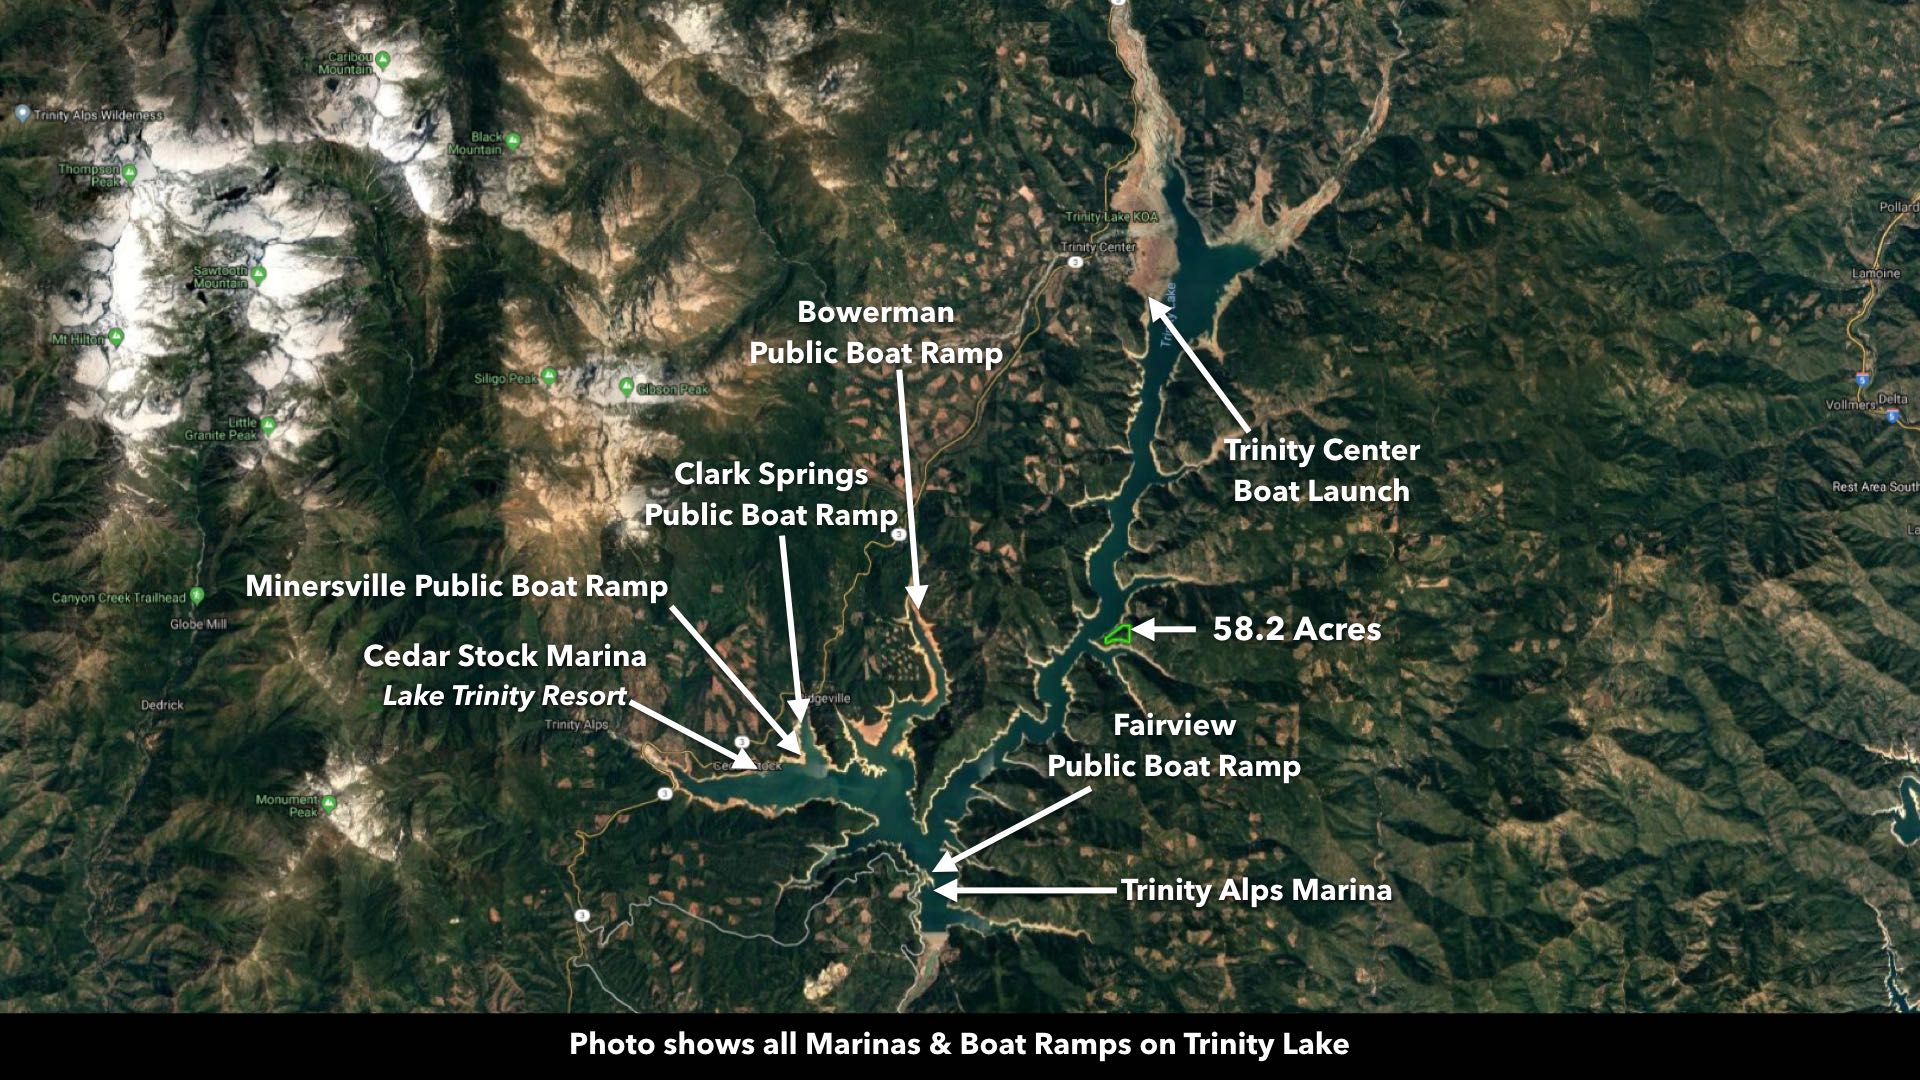 Land for Sale in California - Real Estate on Trinity Lake bordering ...